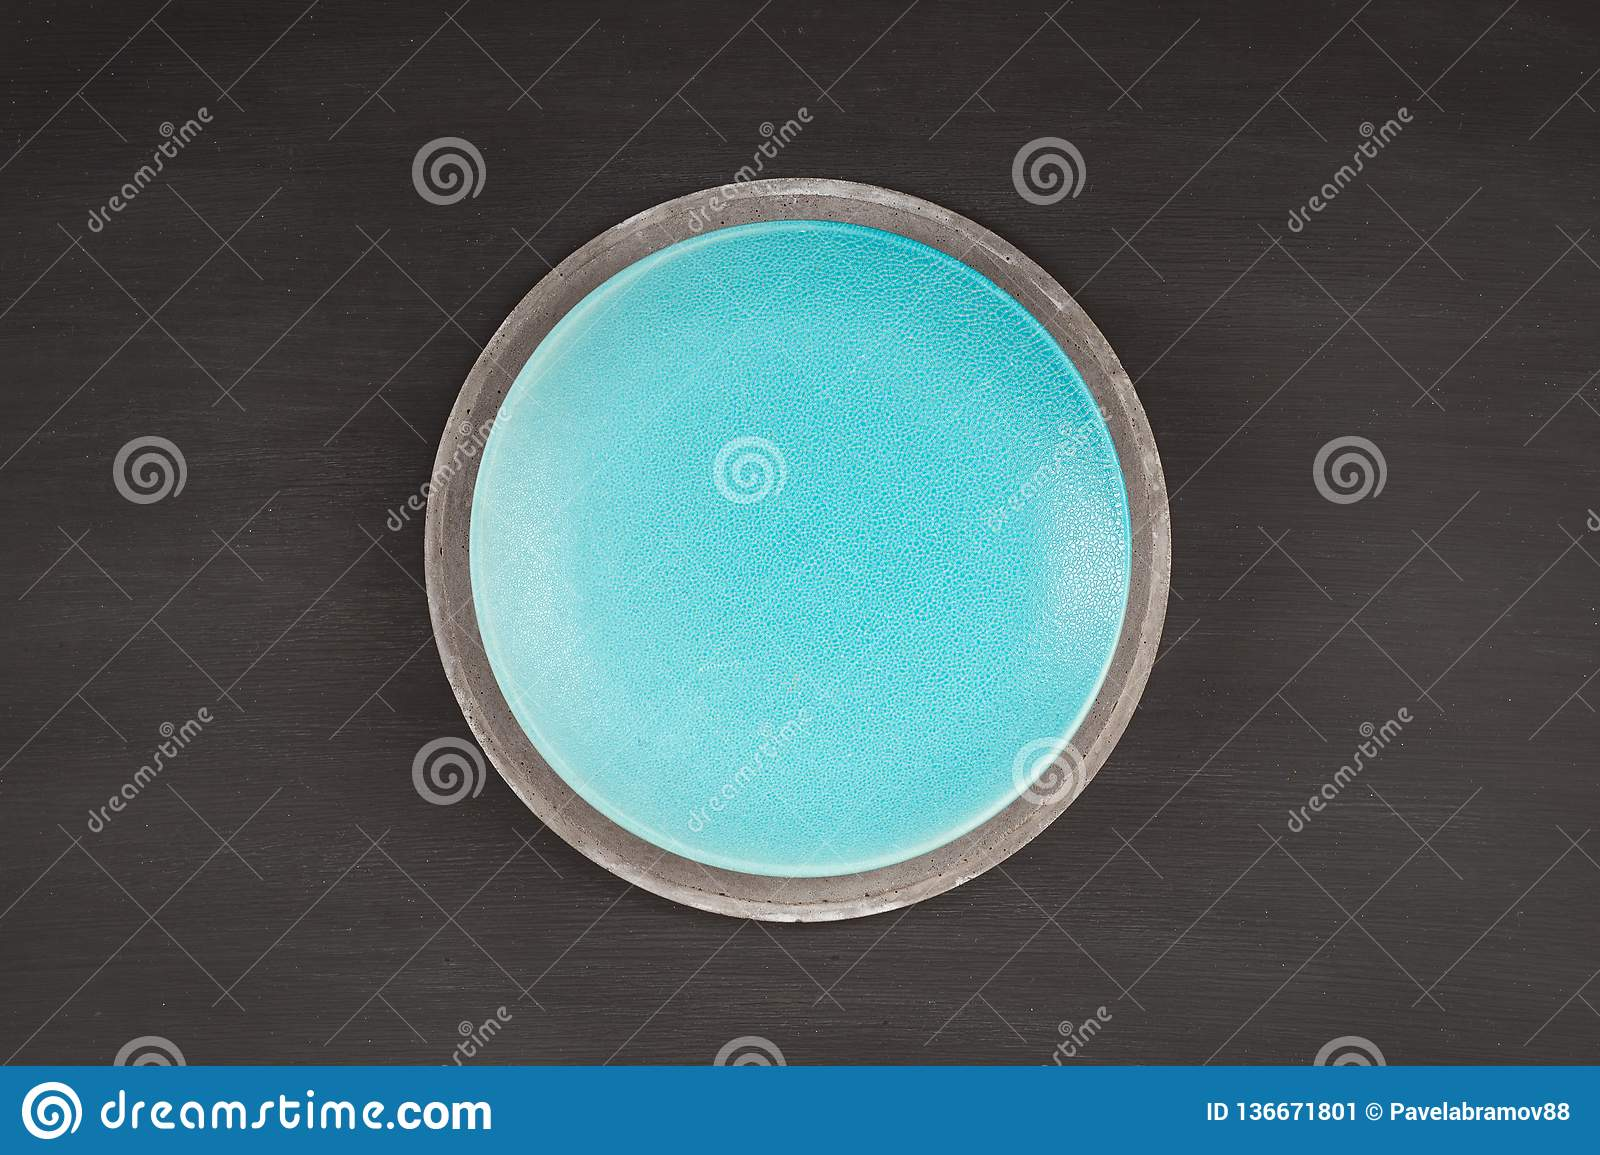 Blue plate on concrete plate on dark background